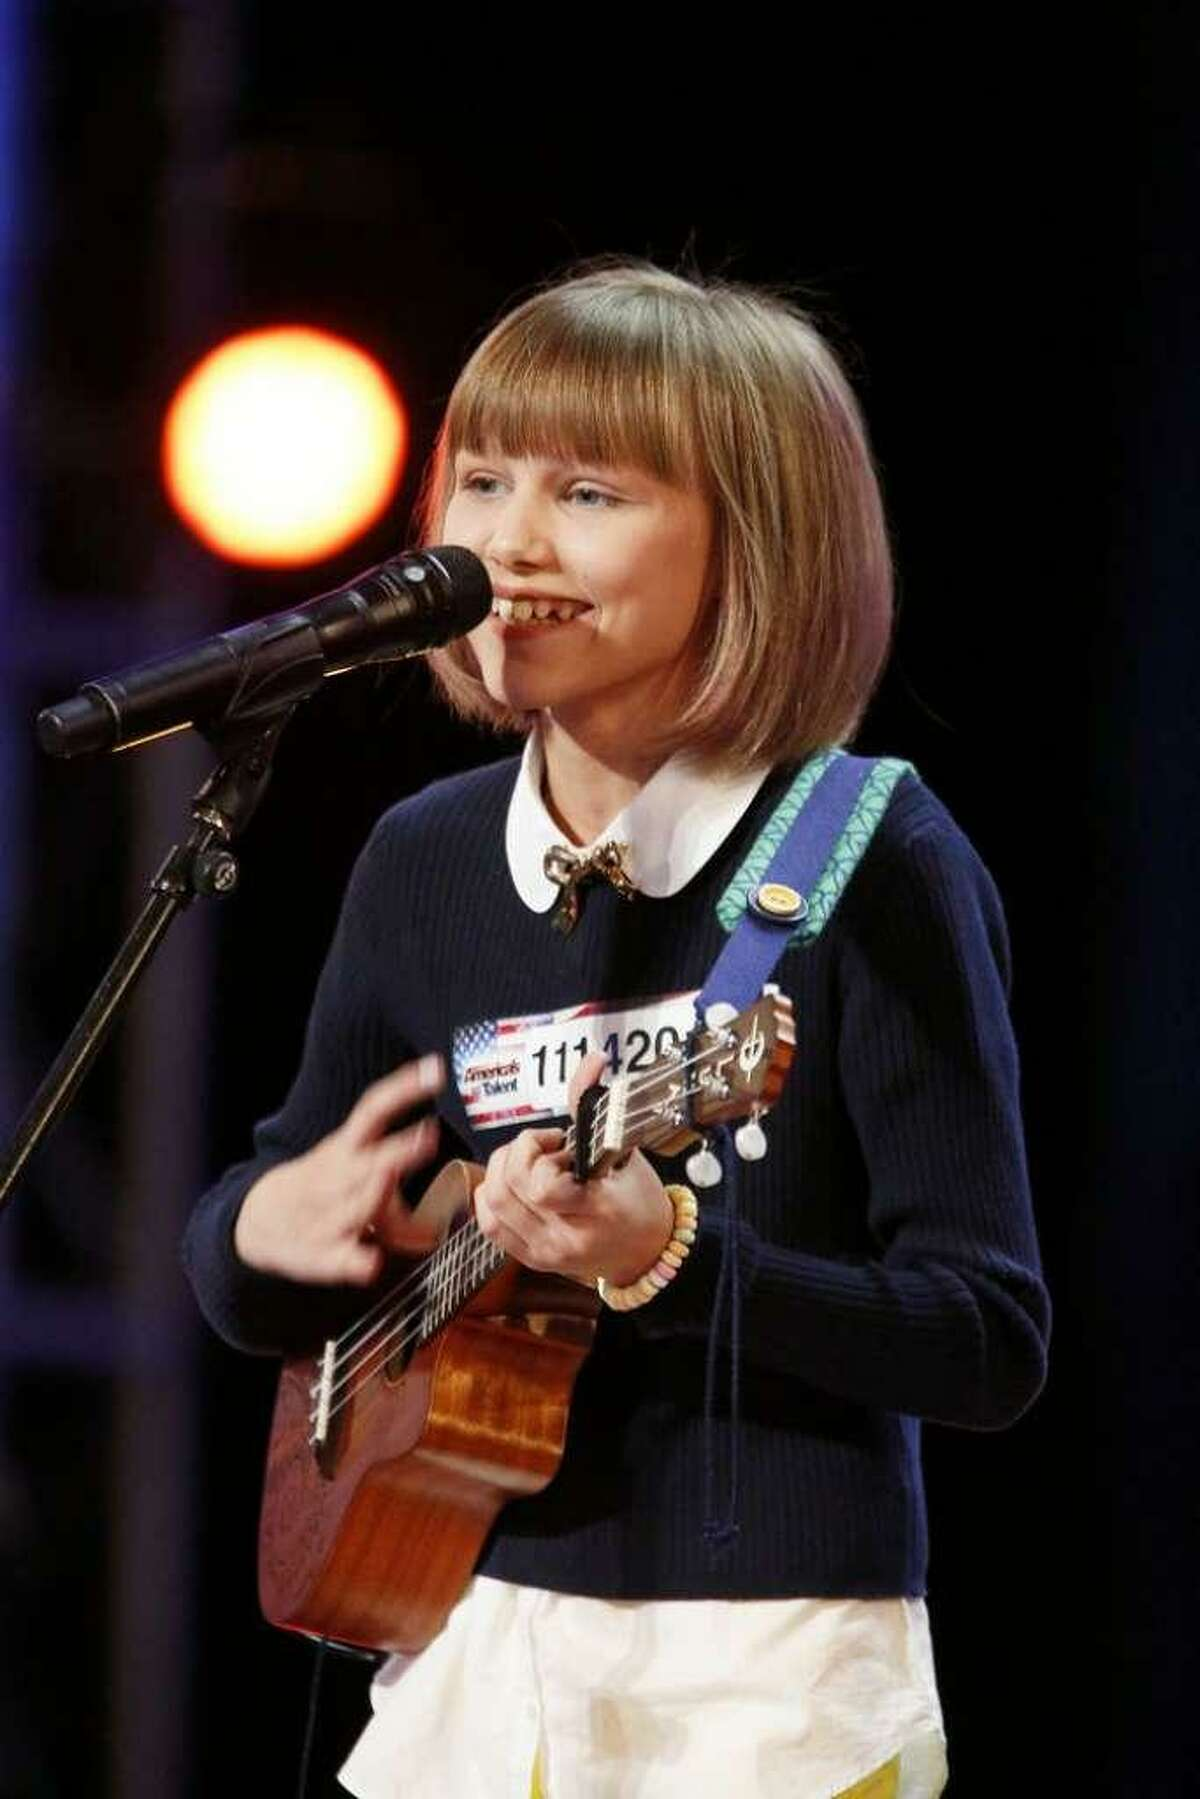 """Young, aspiring ukulele players can find a champion in America's Got Talent season 11 winner, Grace VanderWaal. She auditioned with an original, folksy tune that led the judges to give her the """"golden buzzer,"""" a ticket straight to the series' live shows."""